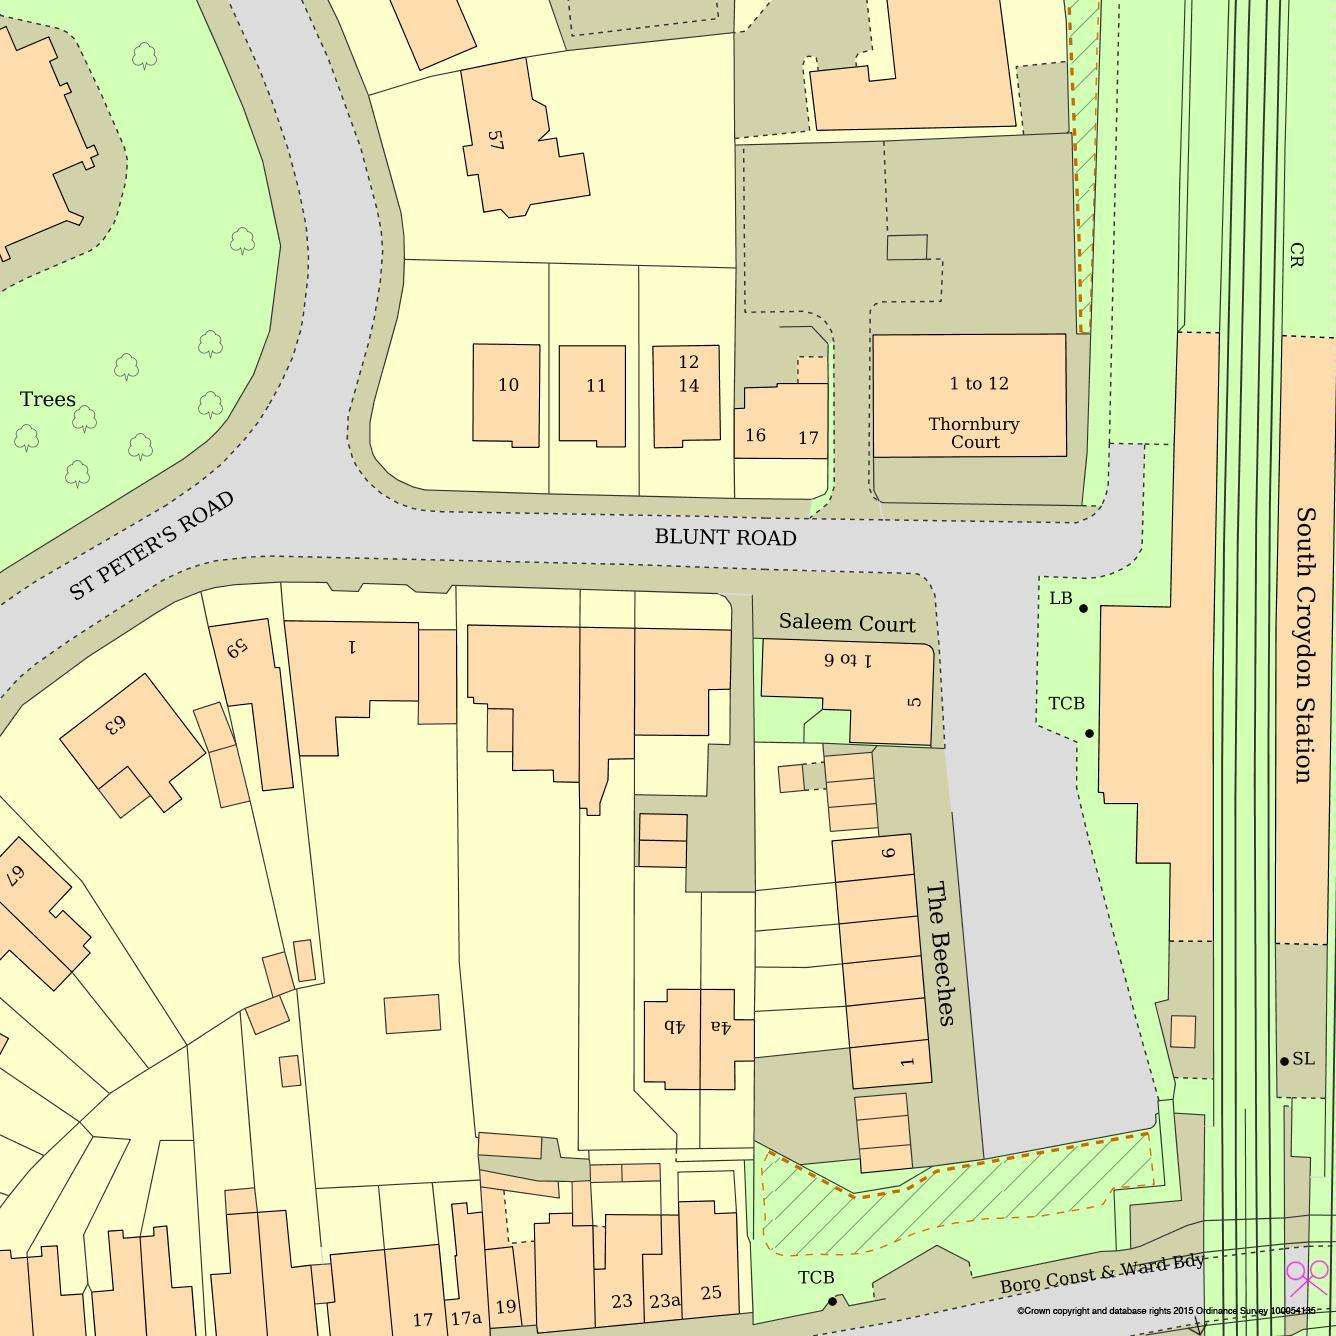 Application Site Map: Price Of Site And Location Plans For Planning Application